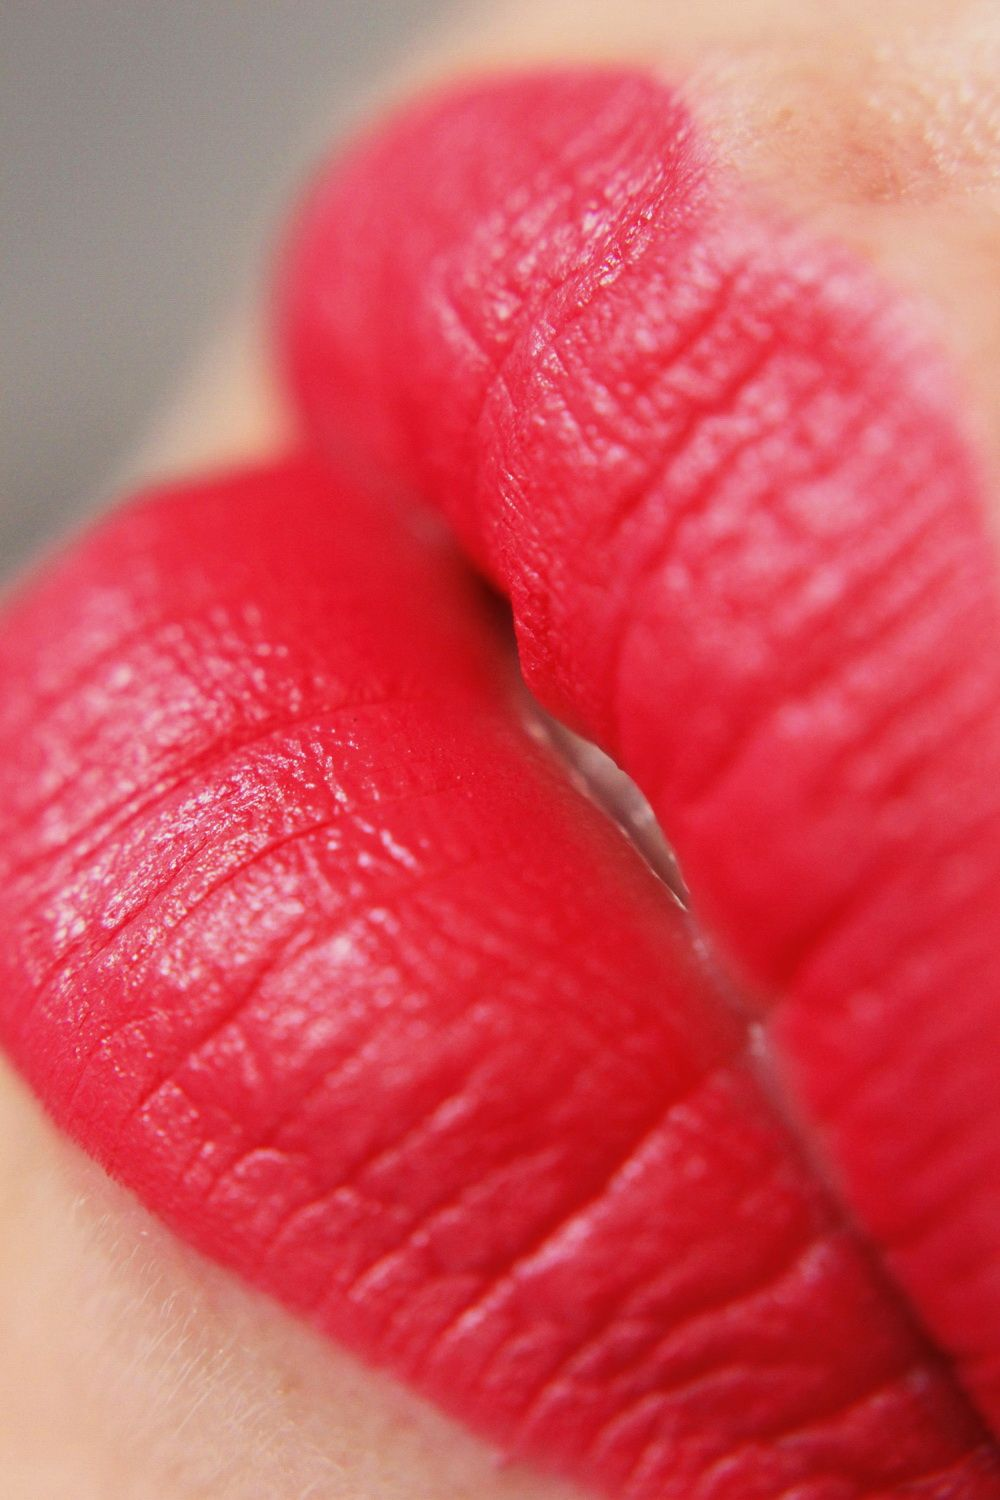 Catrice Matte HibisKiss-Proof swatch